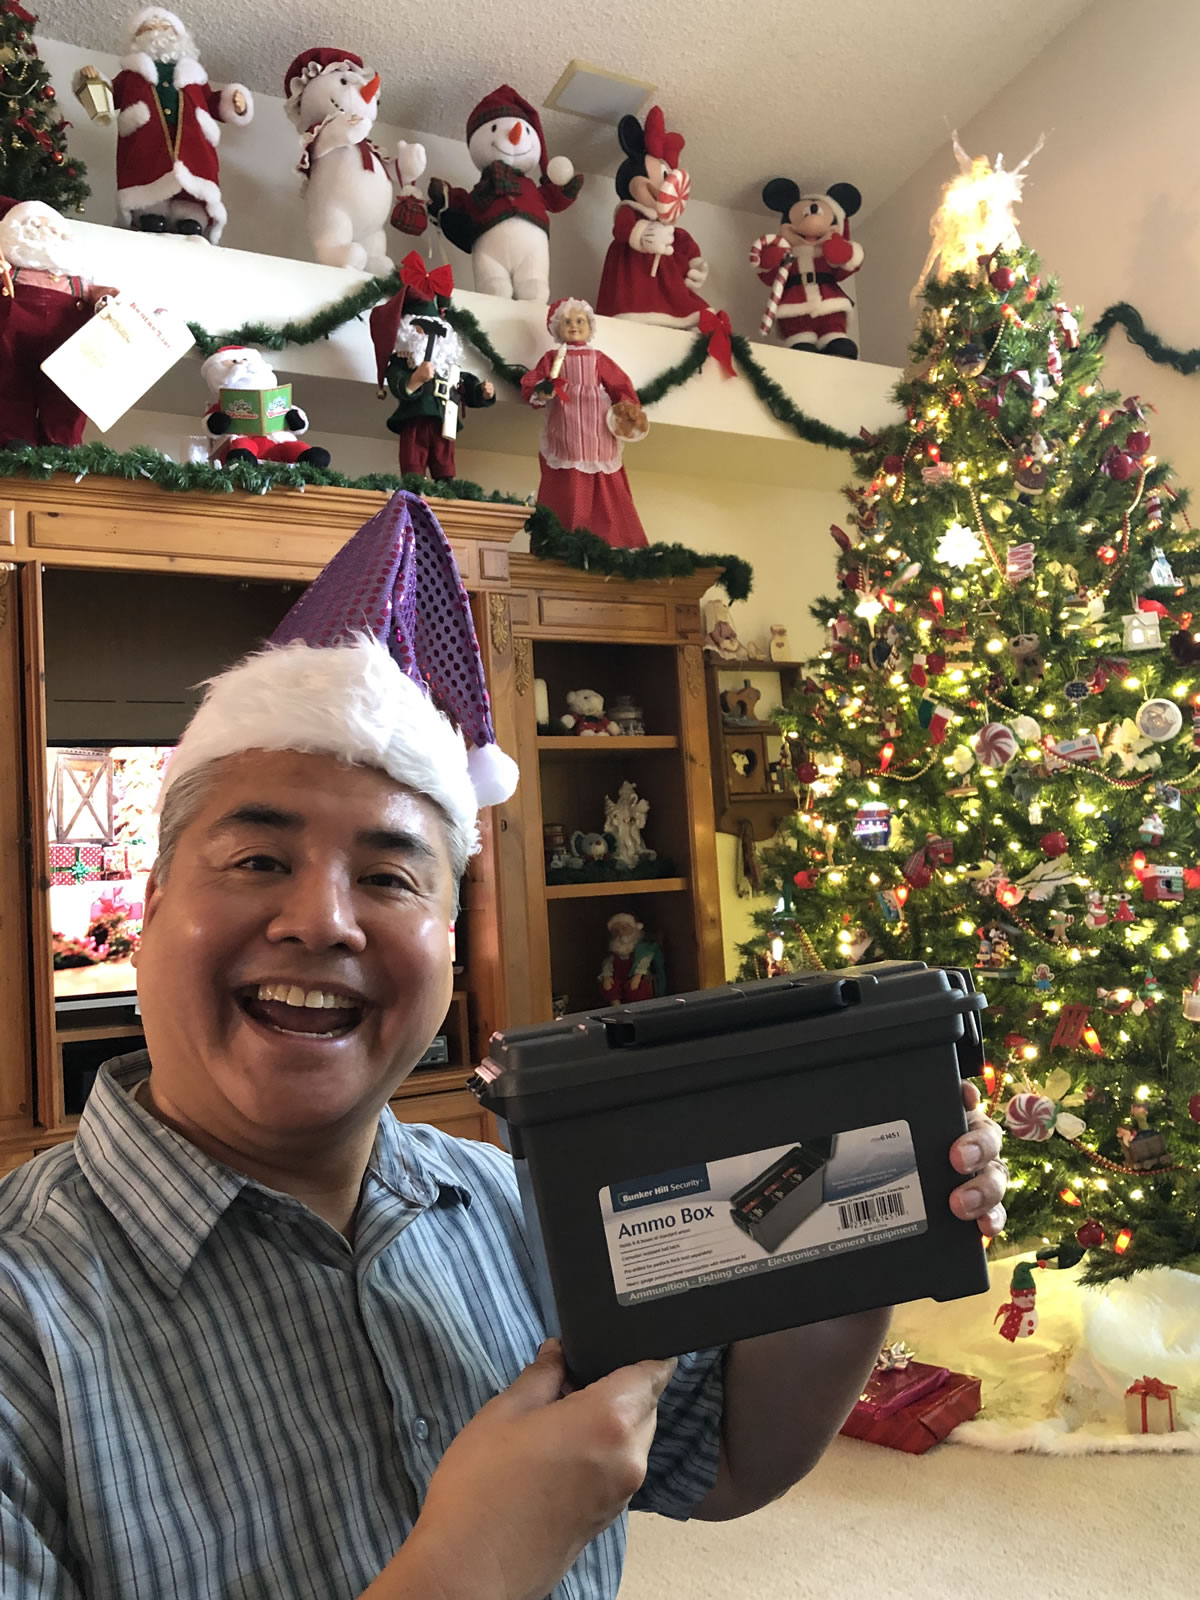 Photo: Joey deVilla and his Christmas 2018 present: an ammo box!